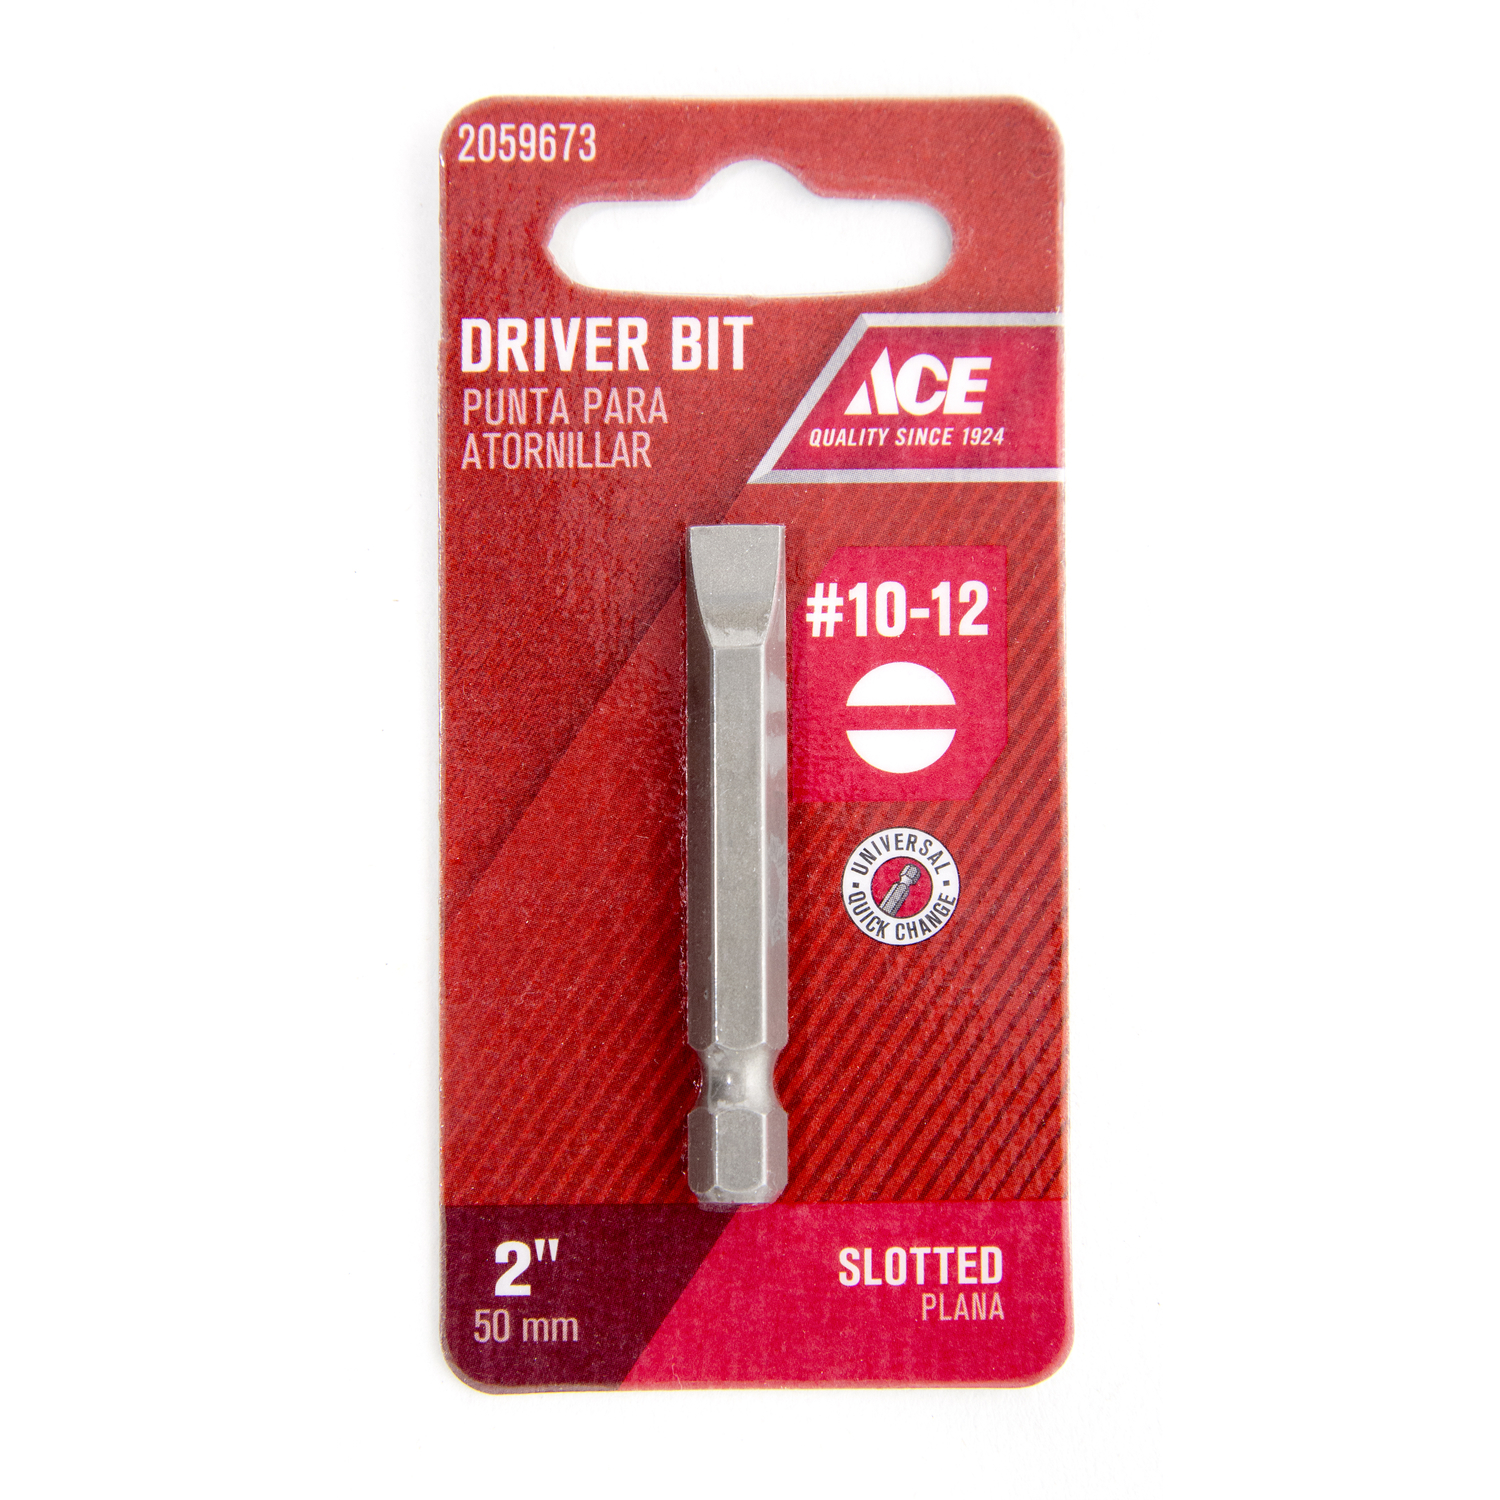 Ace  #10-12 in.  x 2 in. L S2 Tool Steel  1/4 in. Quick-Change Hex Shank  1 pc. Screwdriver Bit  Slo